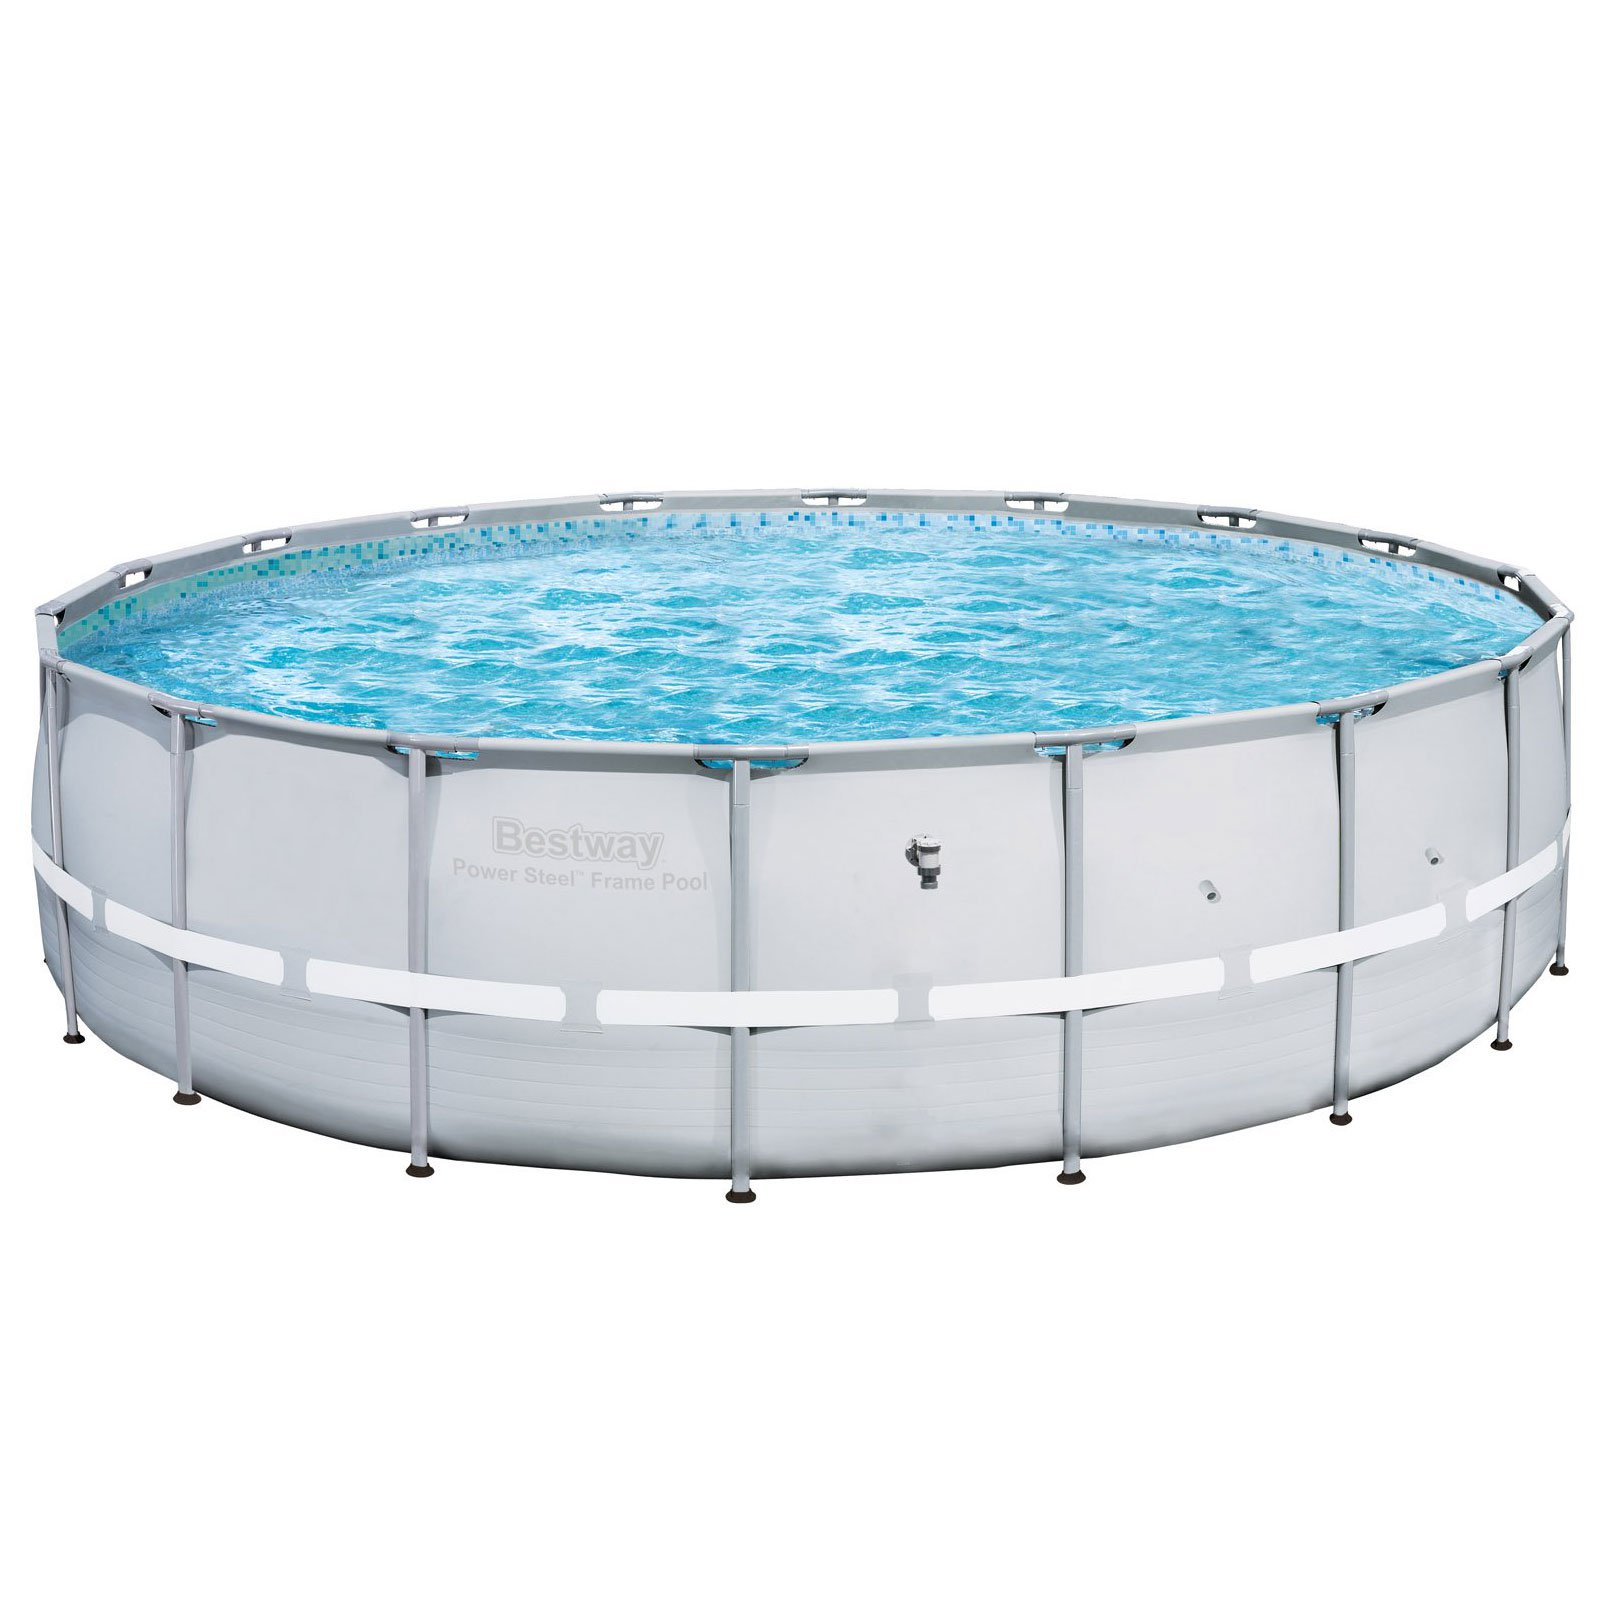 "Bestway 18' x 52"" Power Steel Pro Frame Above Ground Swimming Pool (Pool Only) by Bestway"